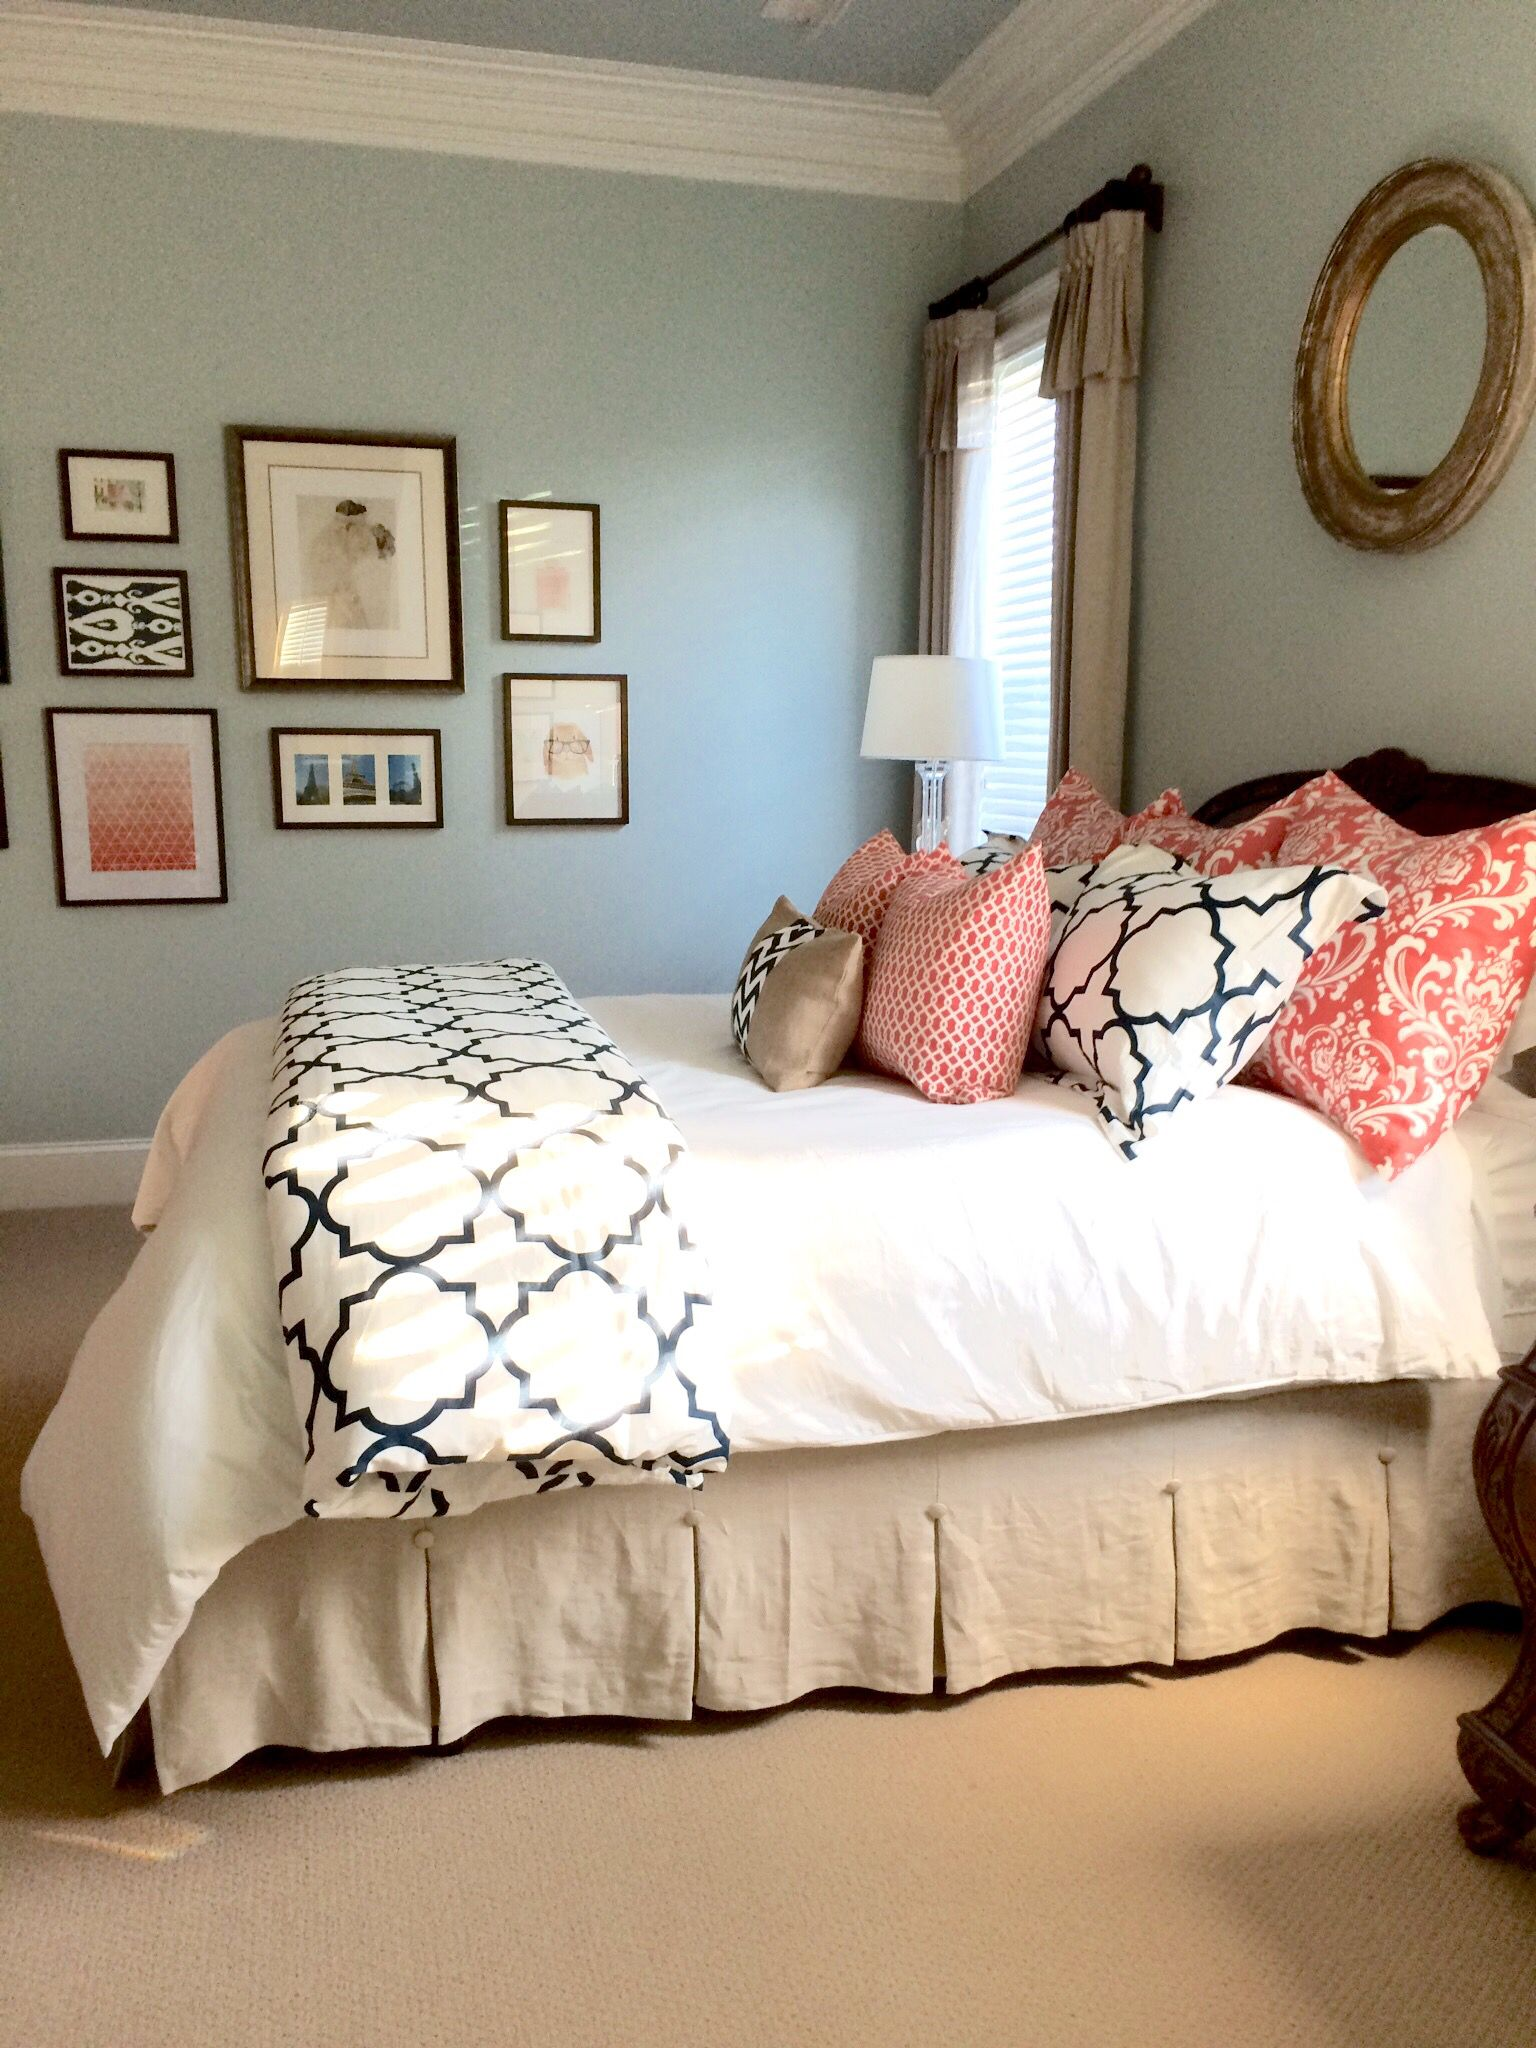 Completed Linen Navy And C Bedroom To See More Rooms In My Home Read Blog Please Visit Www Porchdaydreamer